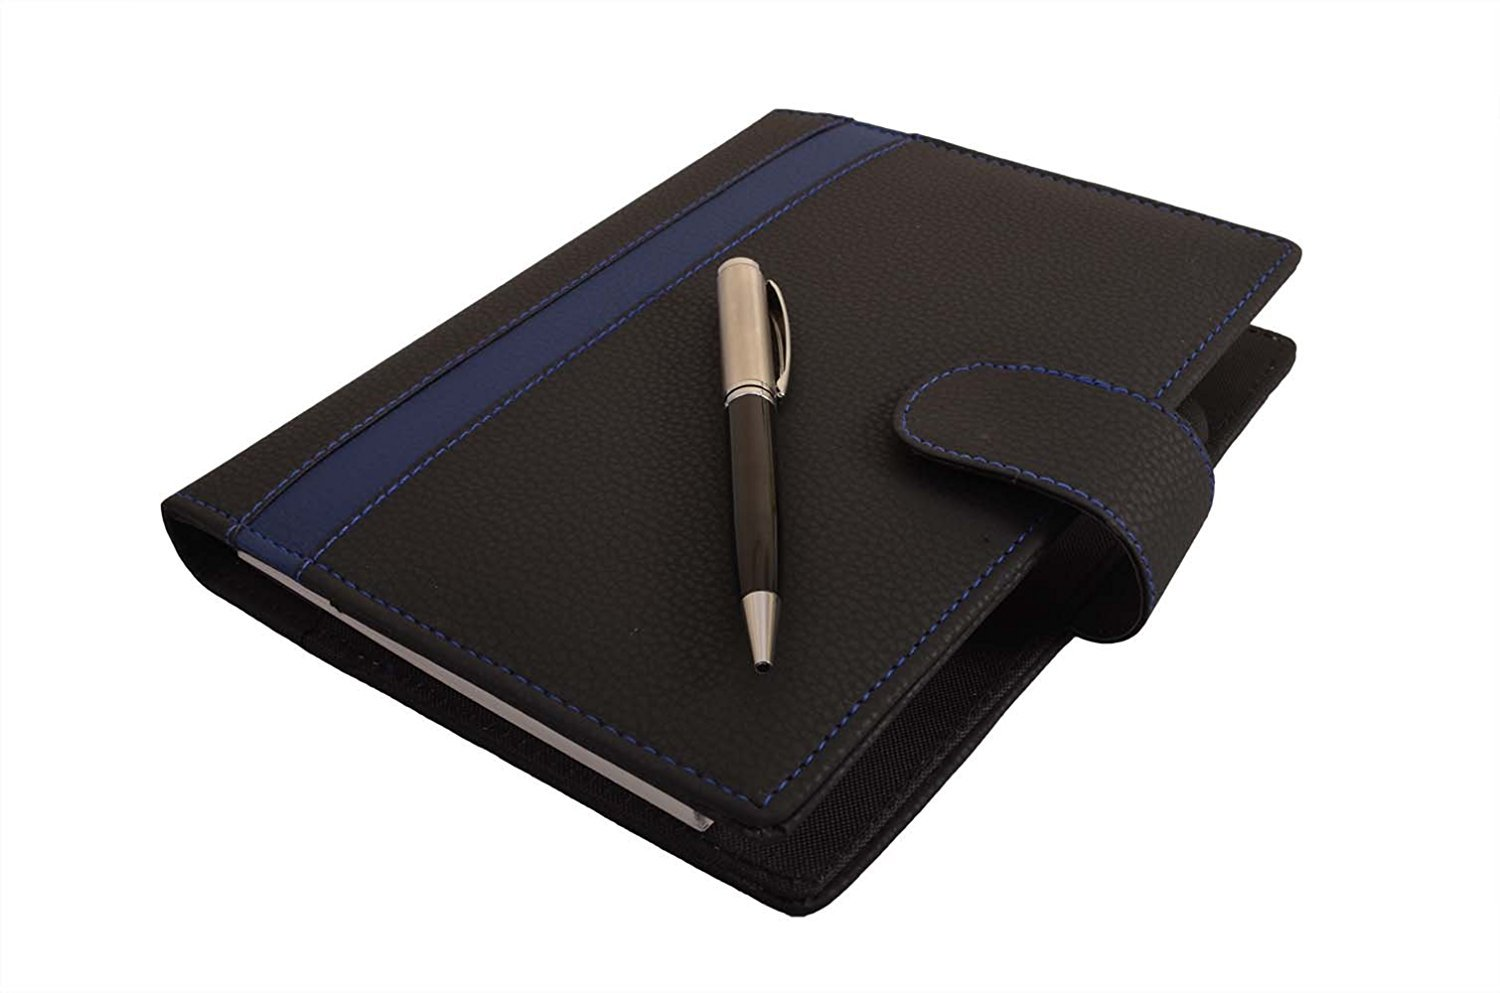 Coi Black and Blue Best self Journal Business undated Passion Goal Planner/Daily Diary & Little More Organizer/Personal Planner 2017-2018 with Pen with Free Pen